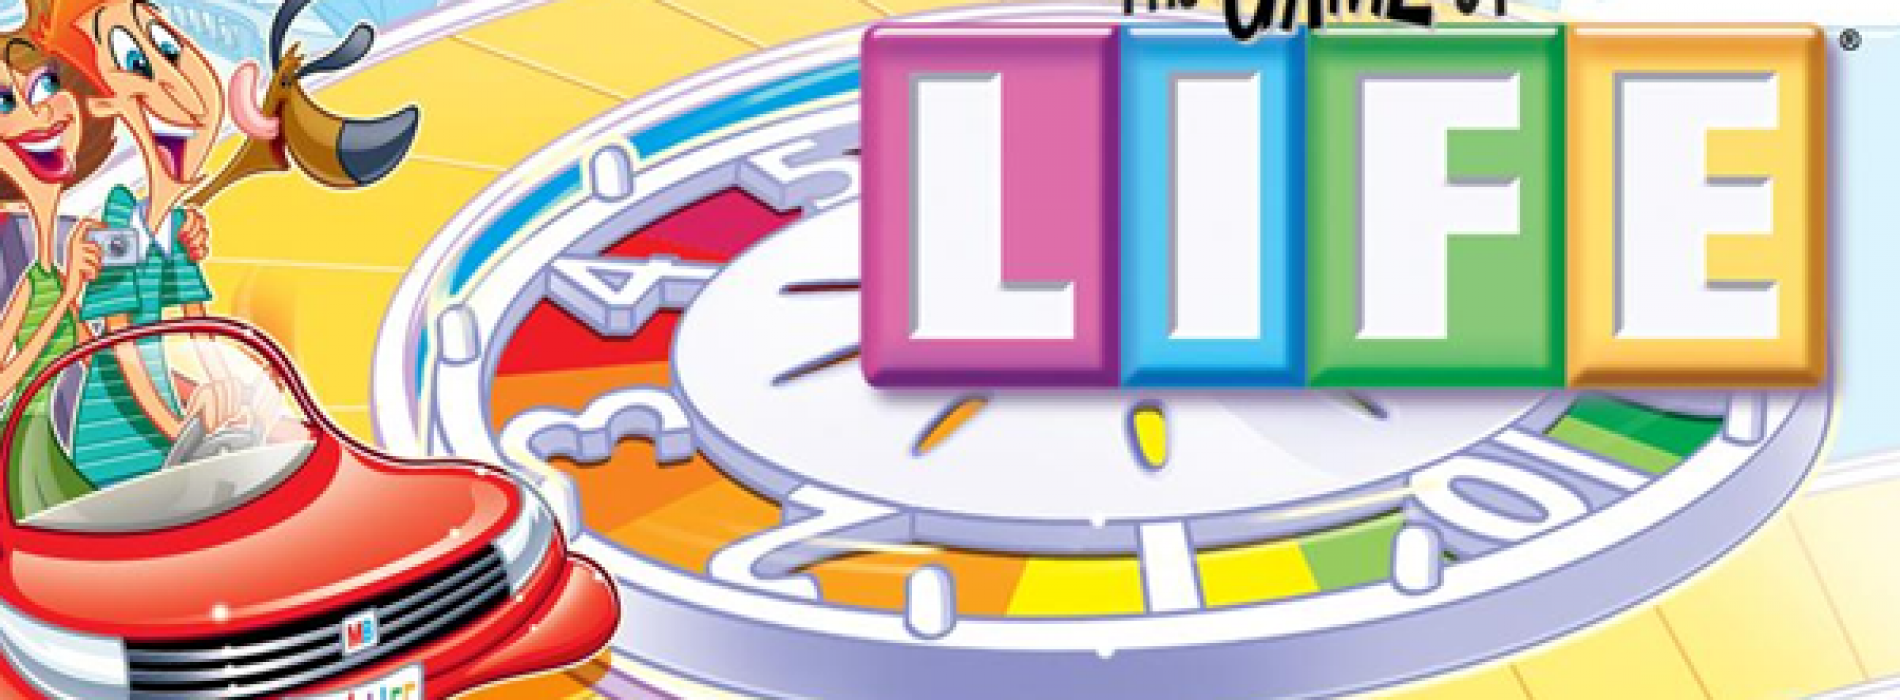 You can be a winner! The Game of Life comes to Android